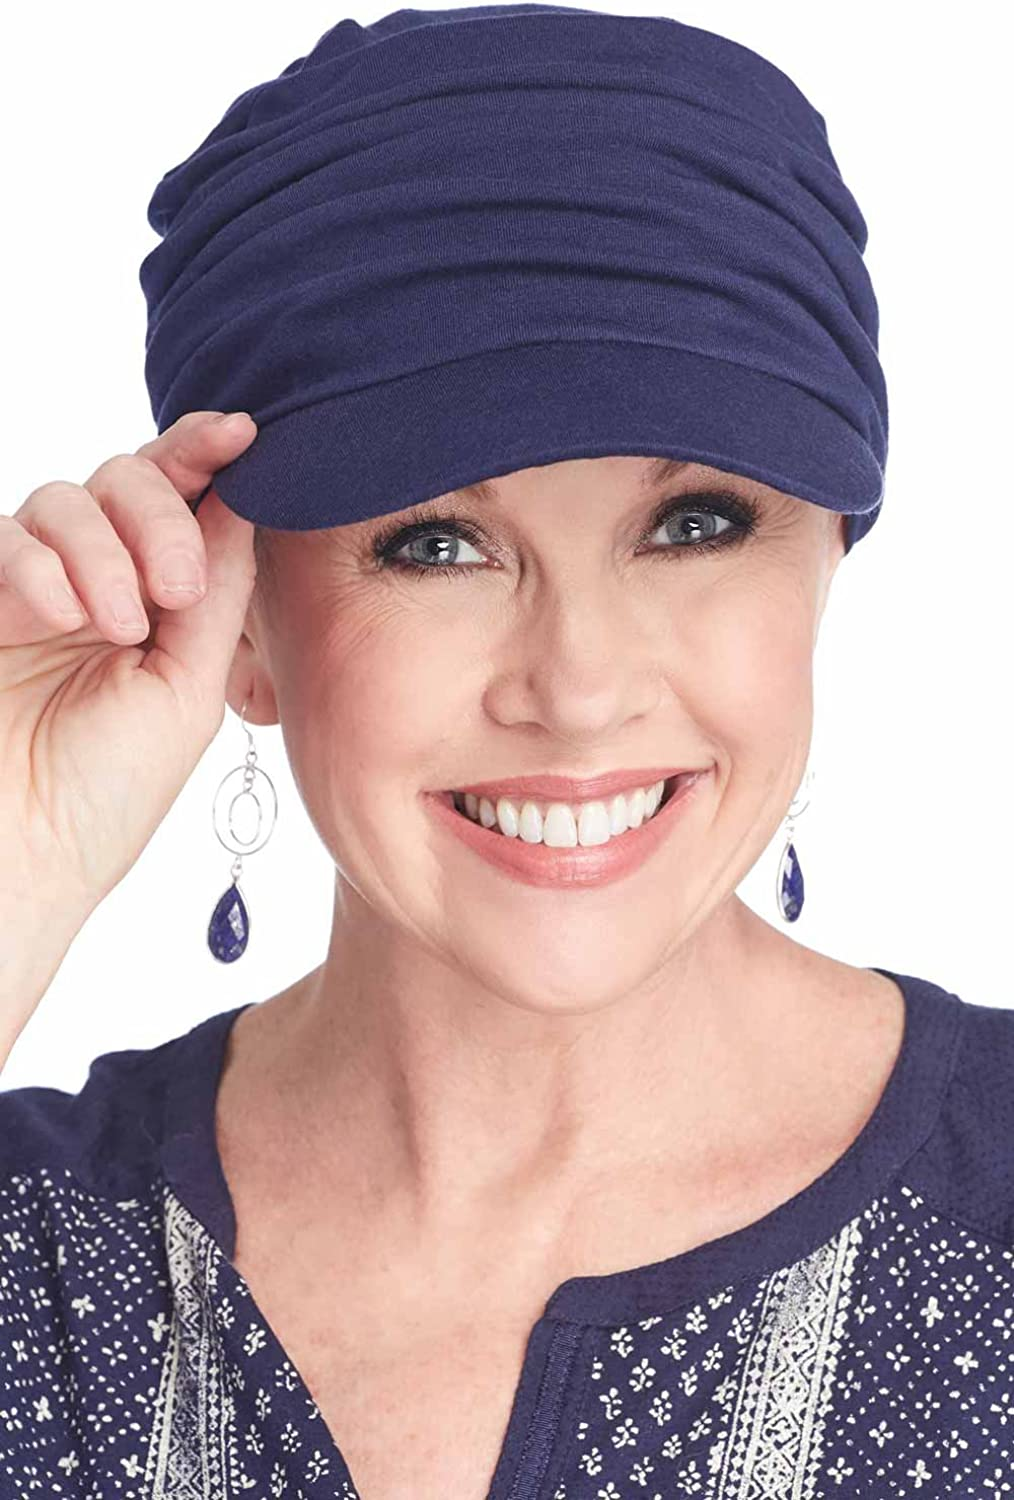 Headcovers Unlimited Tenley Baseball Cap-Caps for Women with Chemo Cancer Hair Loss